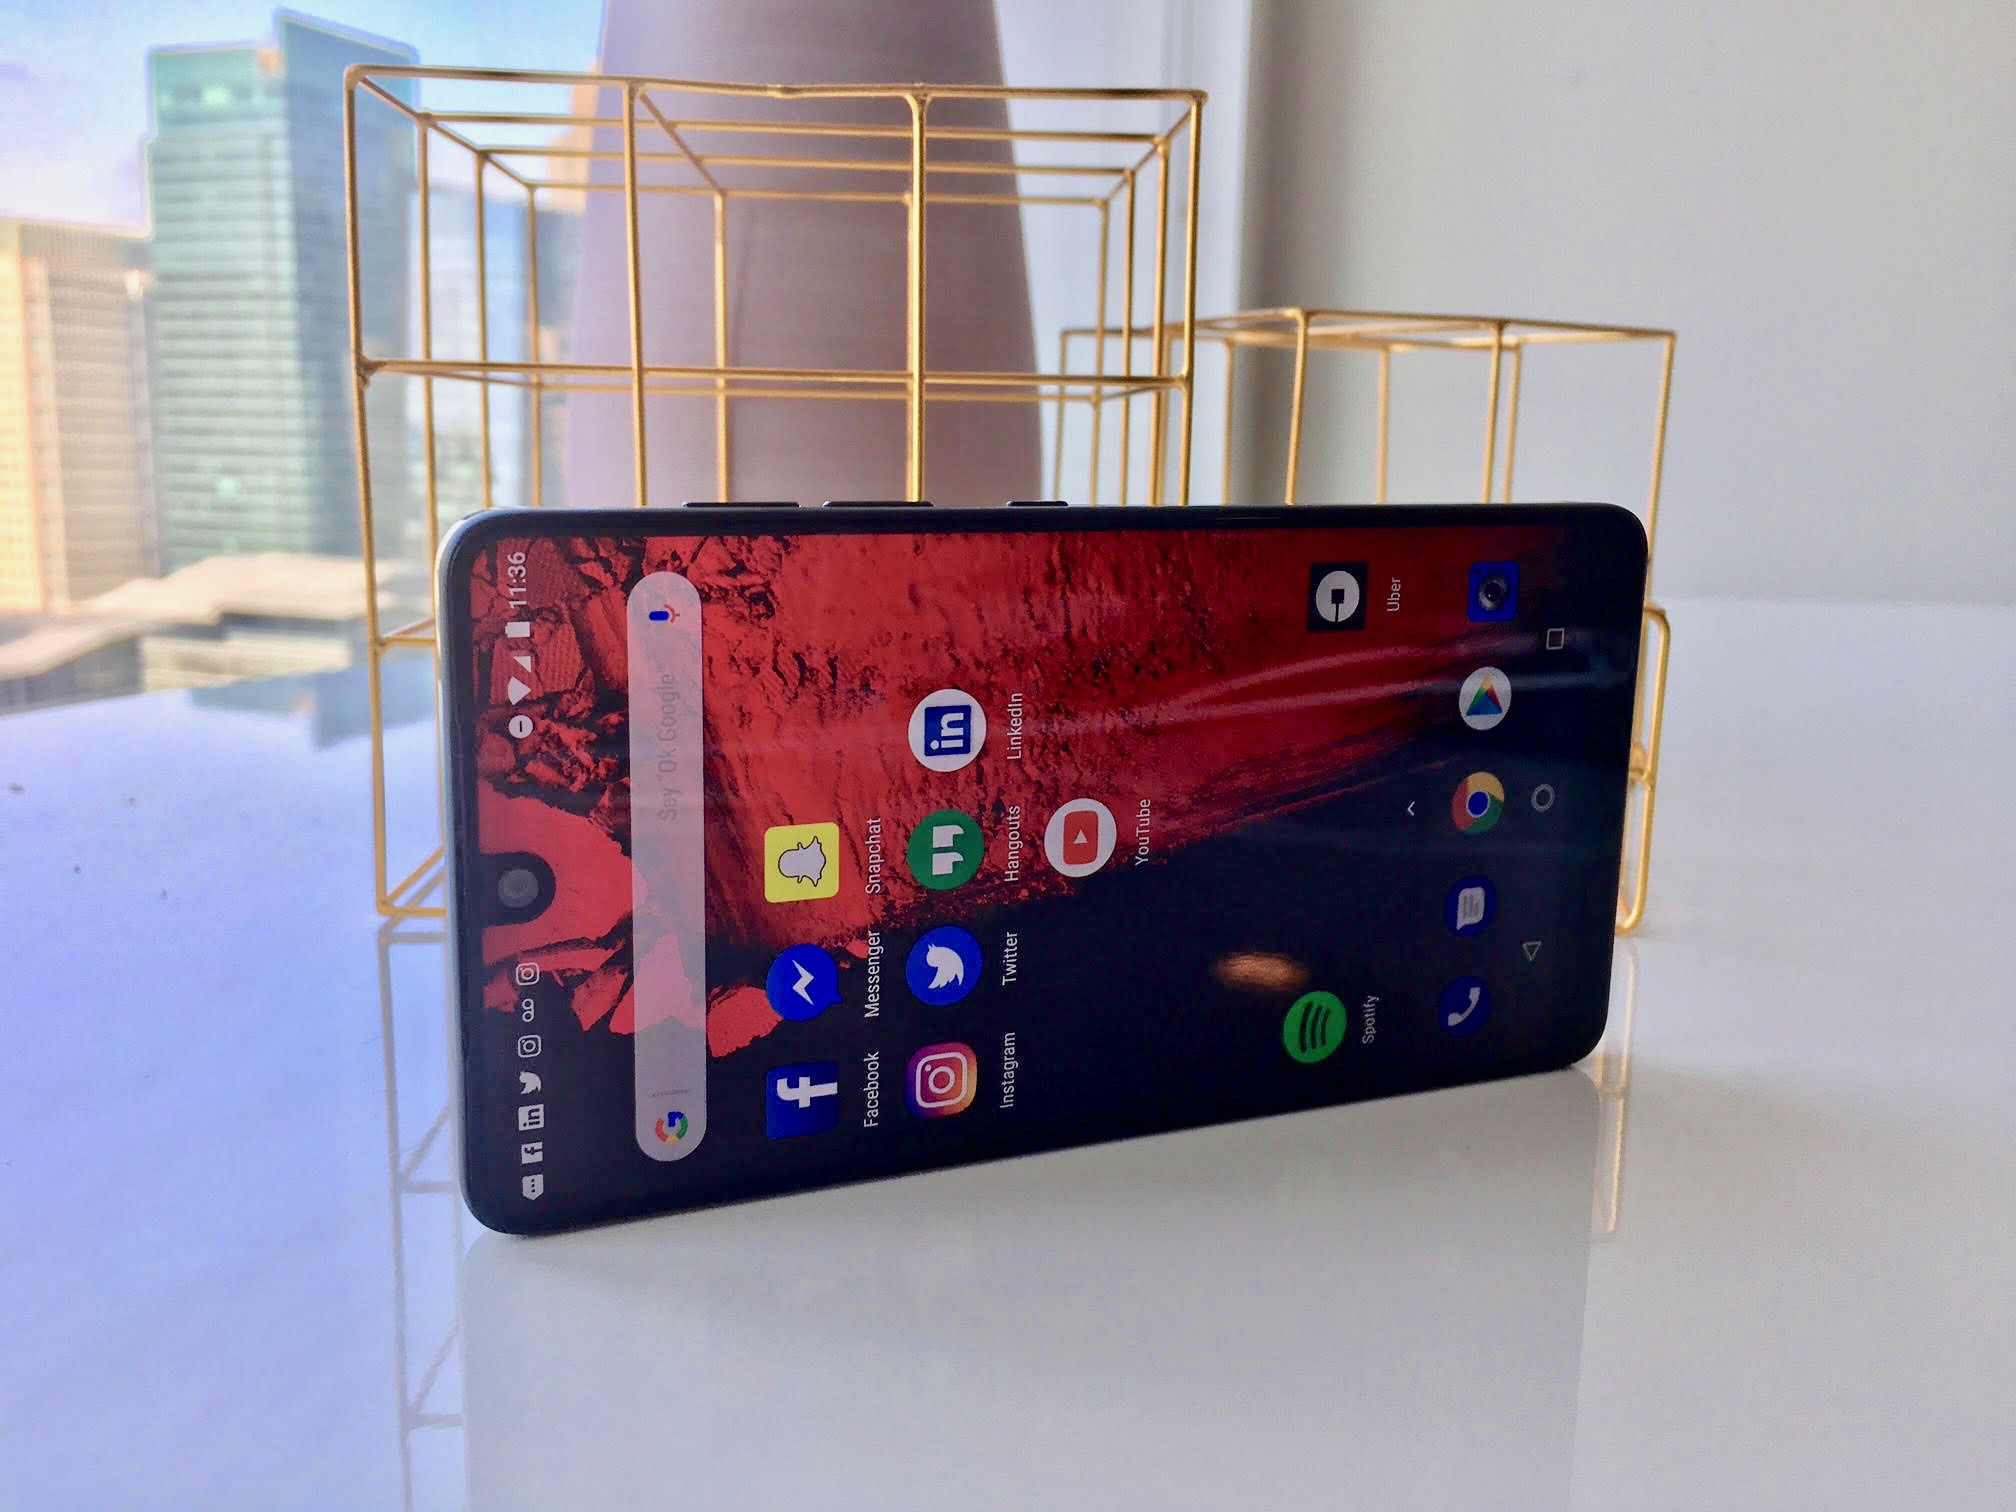 The Essential Phone is a beautiful alternative to Apple's iPhone